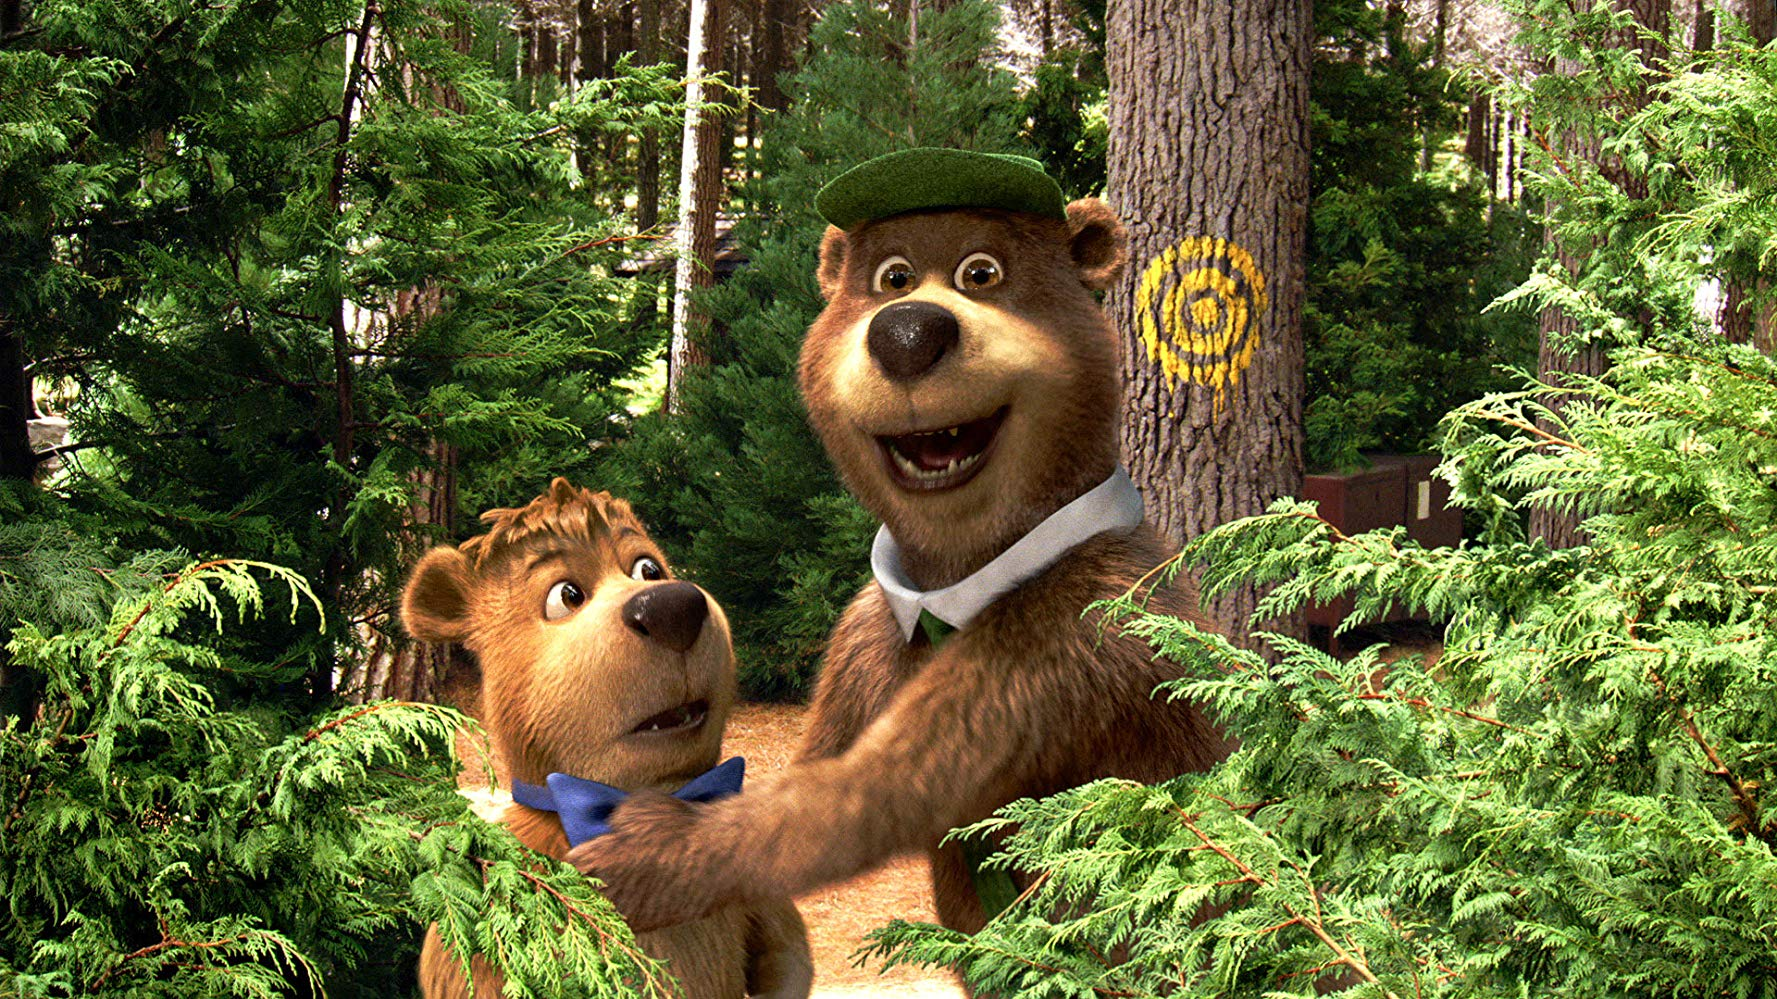 Yogi and Boo Boo in Yogi Bear (2010)